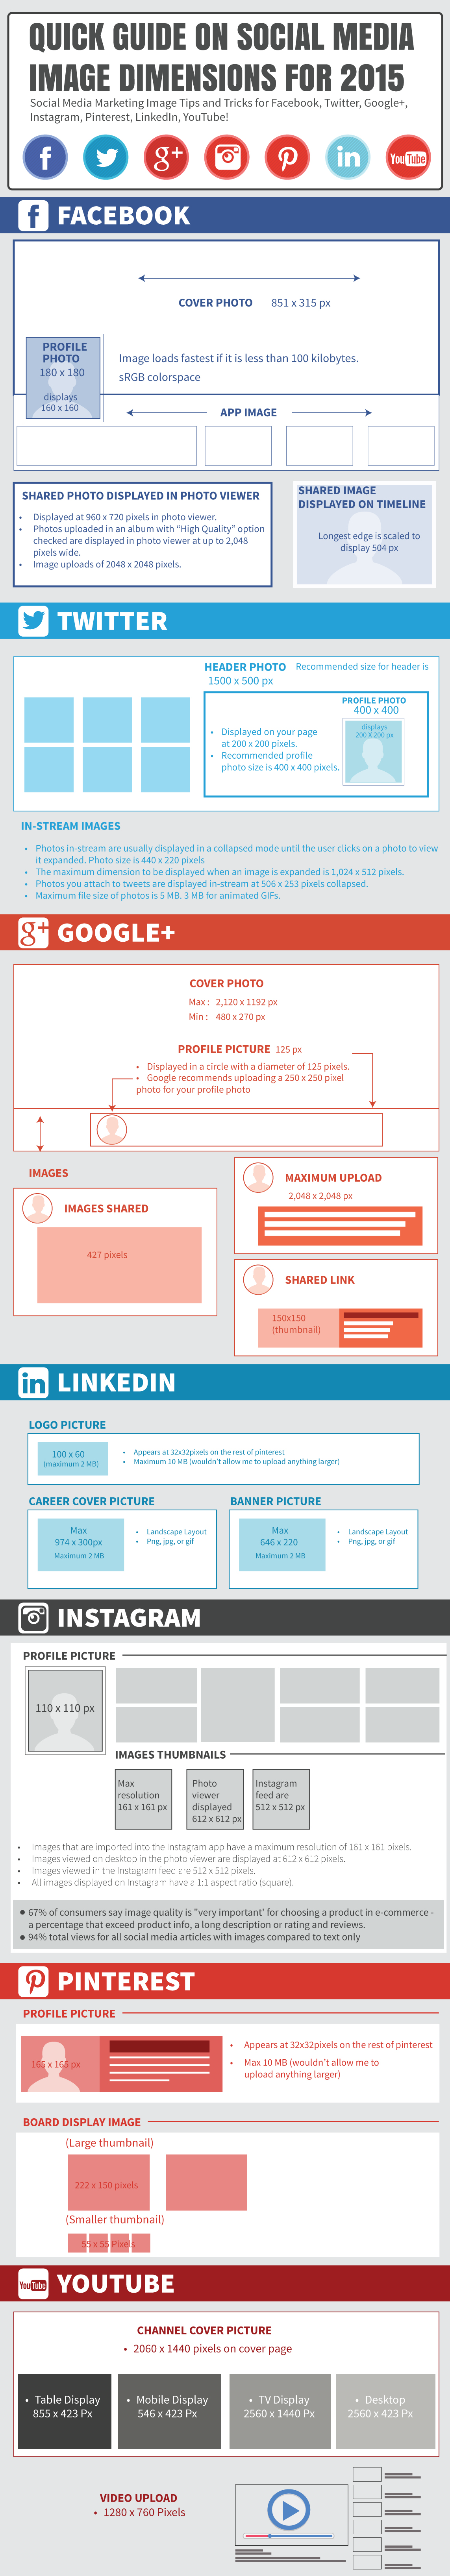 Quick-Guide-On-Social-Media-Image-Dimensions